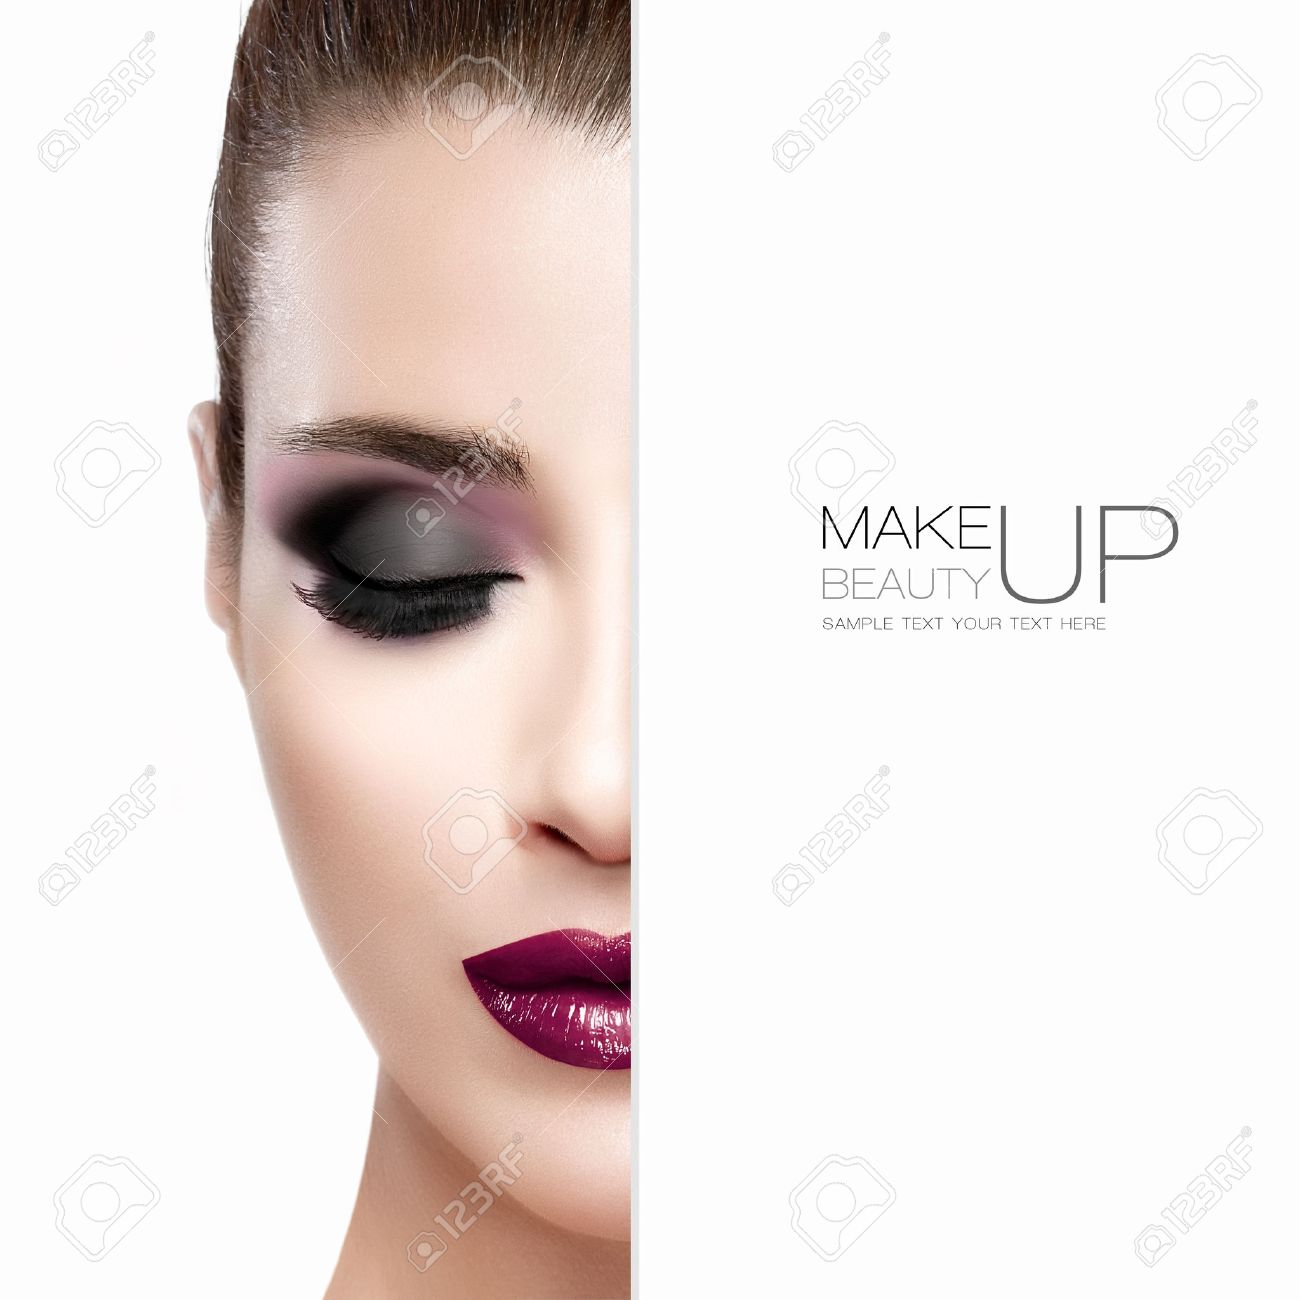 Beauty and Makeup concept with half face of a beautiful young woman with eyes closed. Perfect skin. Trendy burgundy lips and smoky eyes. Fashionable eyelashes. High fashion portrait isolated on white with sample text - 45414632